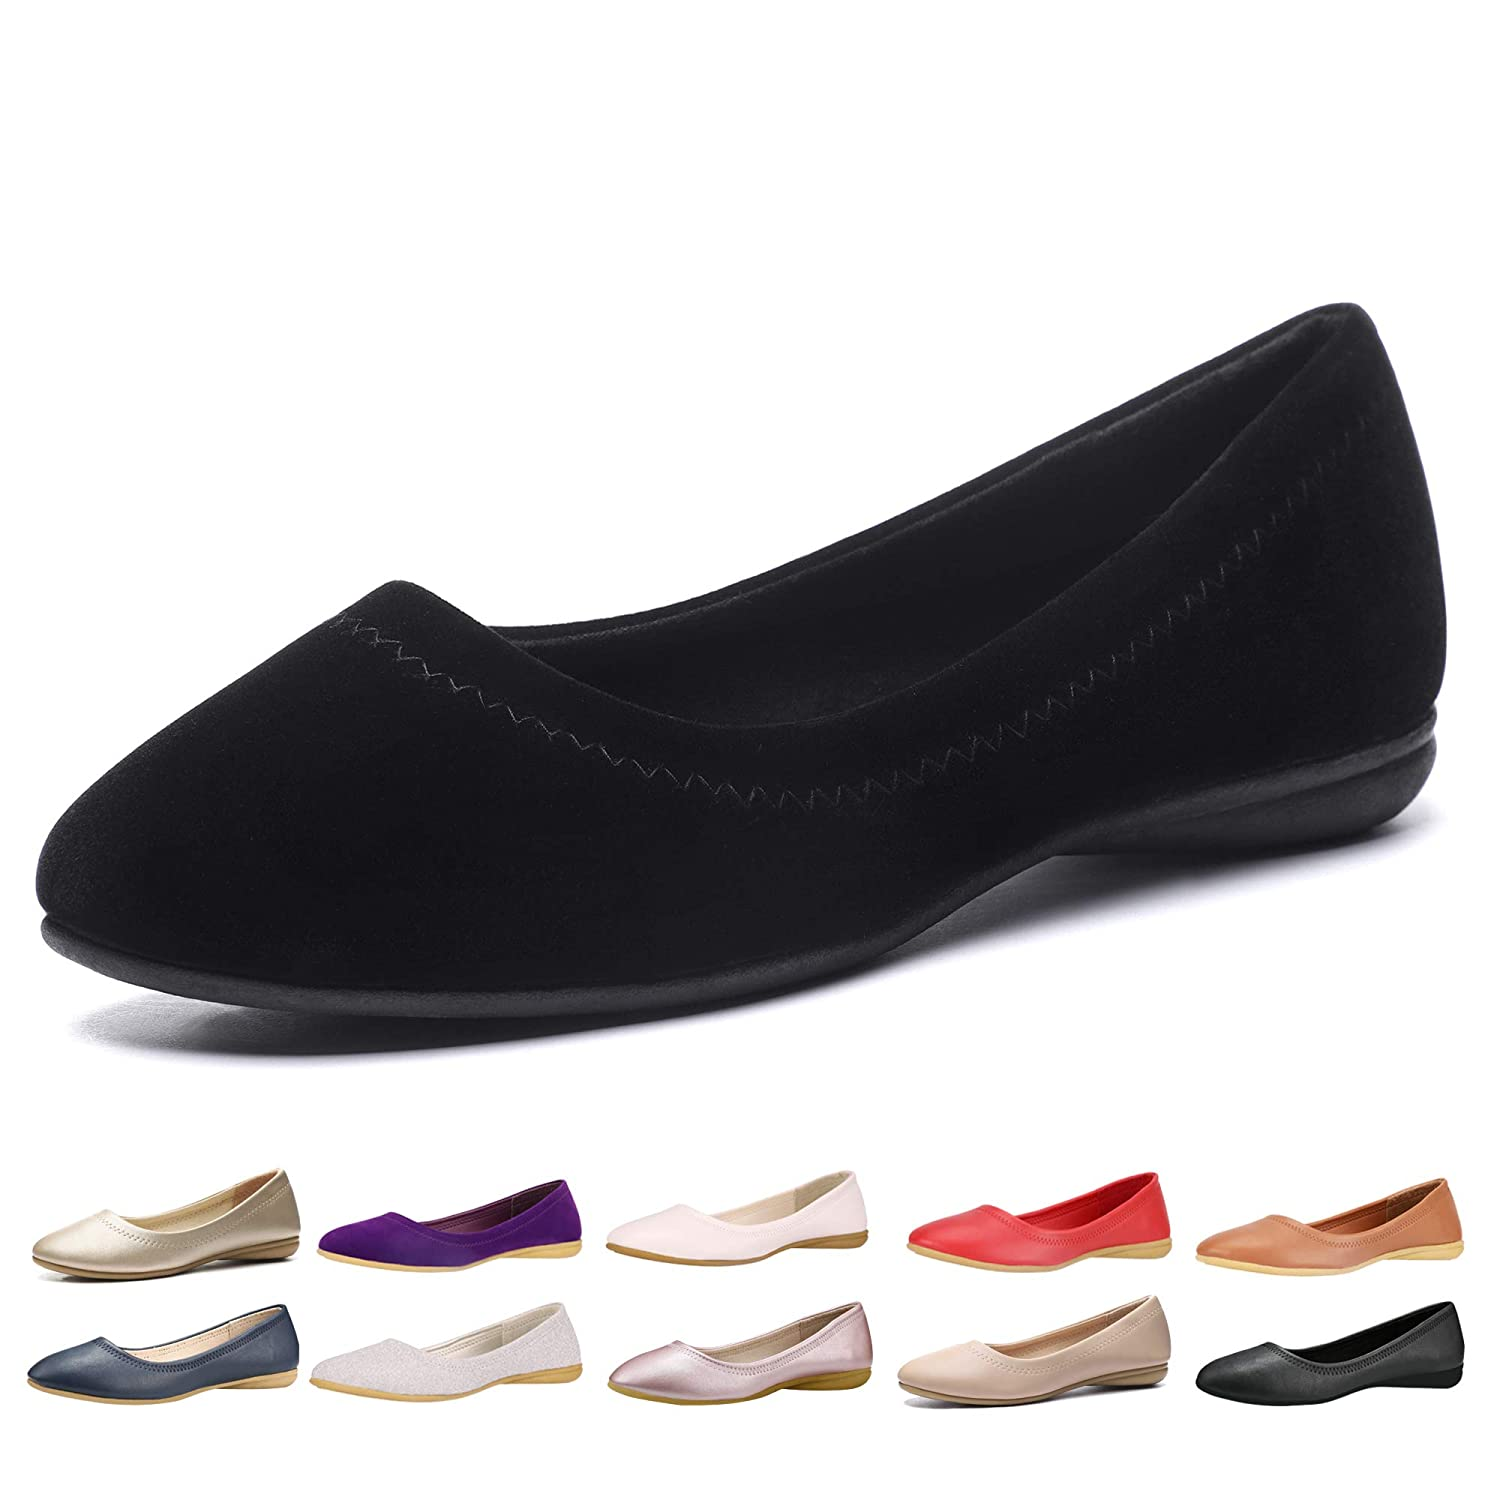 bfdd01ab462 CINAK Flats Shoes Women– Slip-on Ballet Comfort Walking Classic Round Toe  Shoes